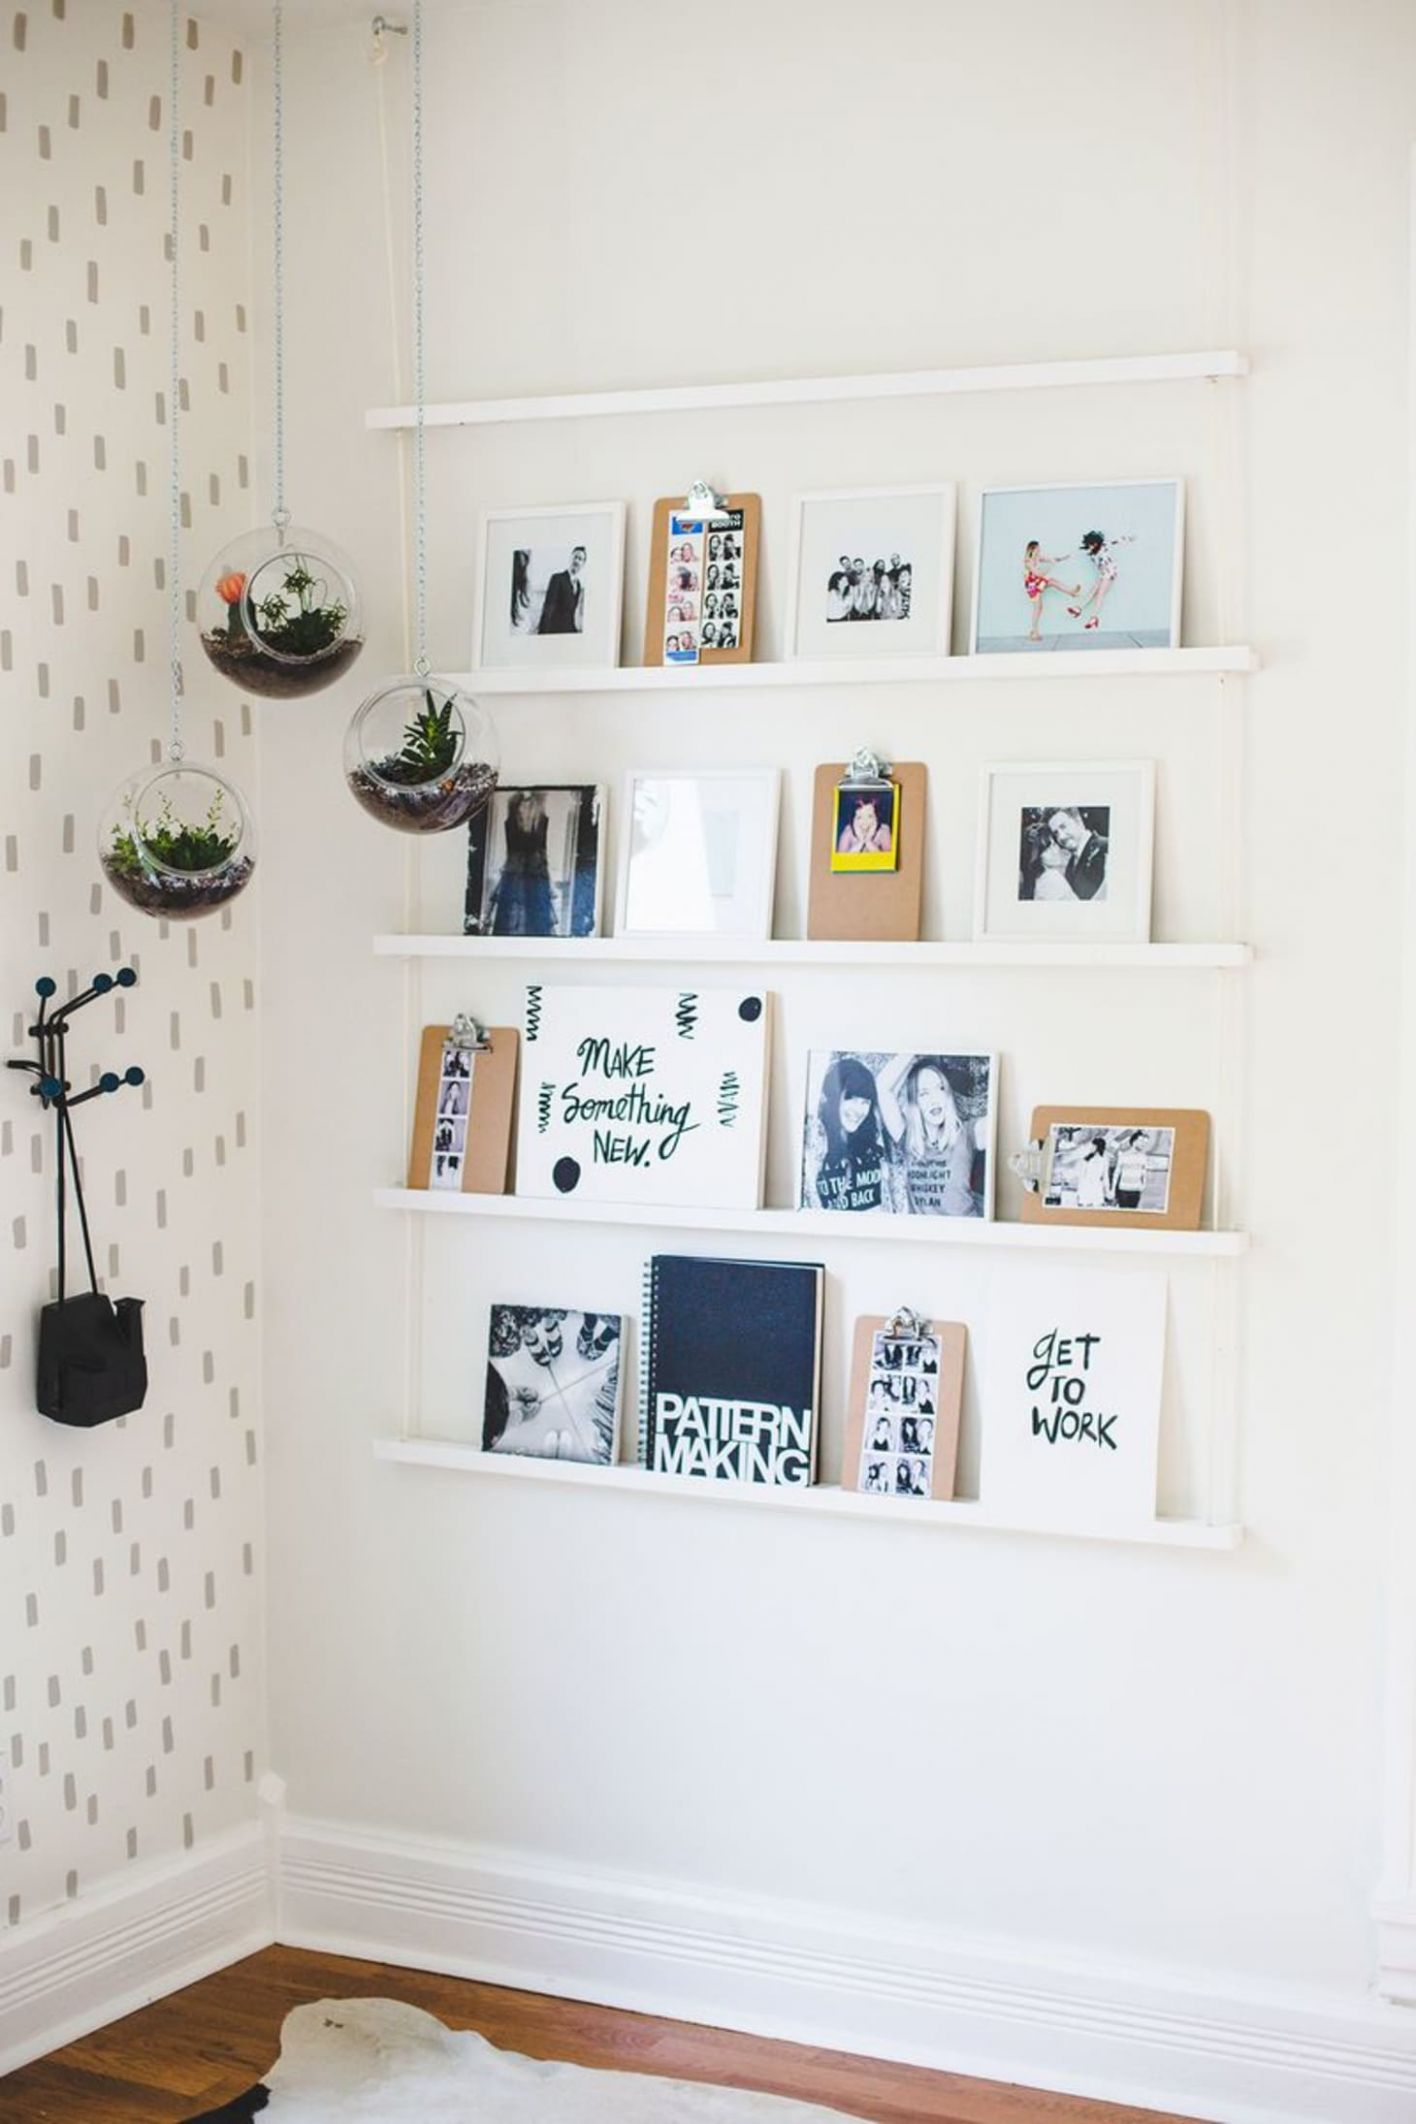 Wall Decor Ideas - 12 Things to Try at Home   Apartment Therapy - wall decoration ideas no nails